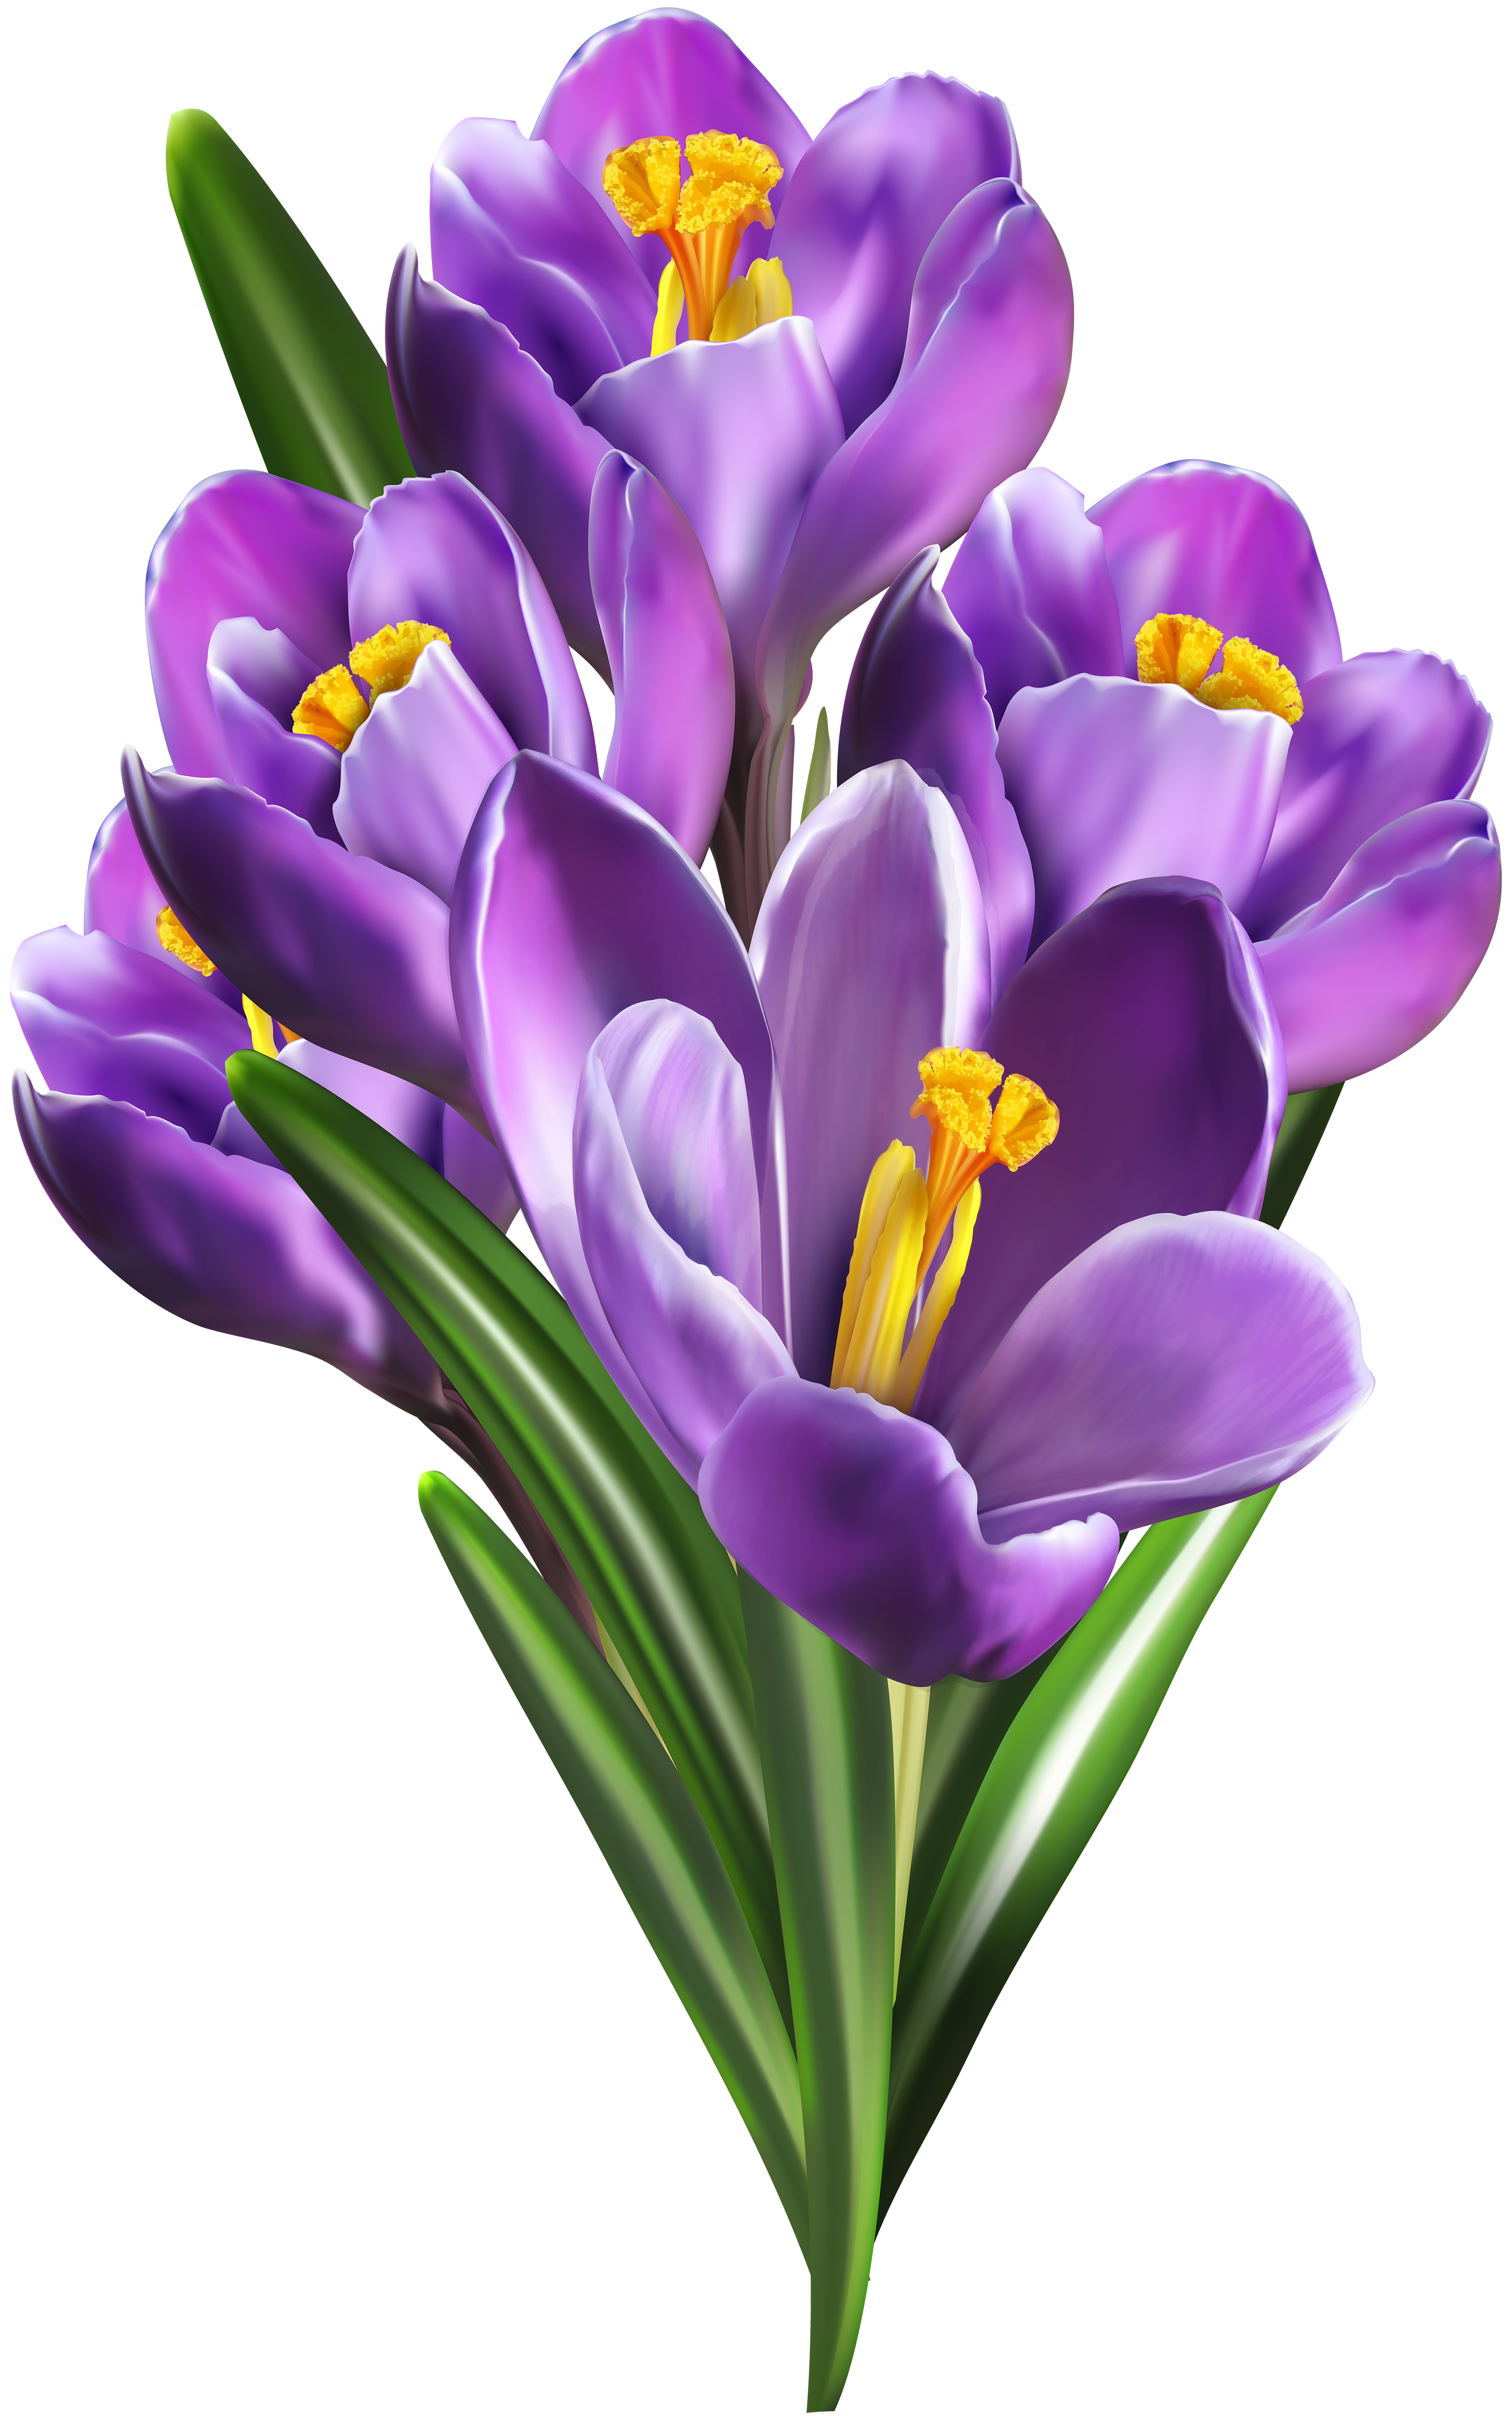 Crocus flower clipart freeuse library Image file formats Lossless compression - Purple Crocuses PNG Clip ... freeuse library